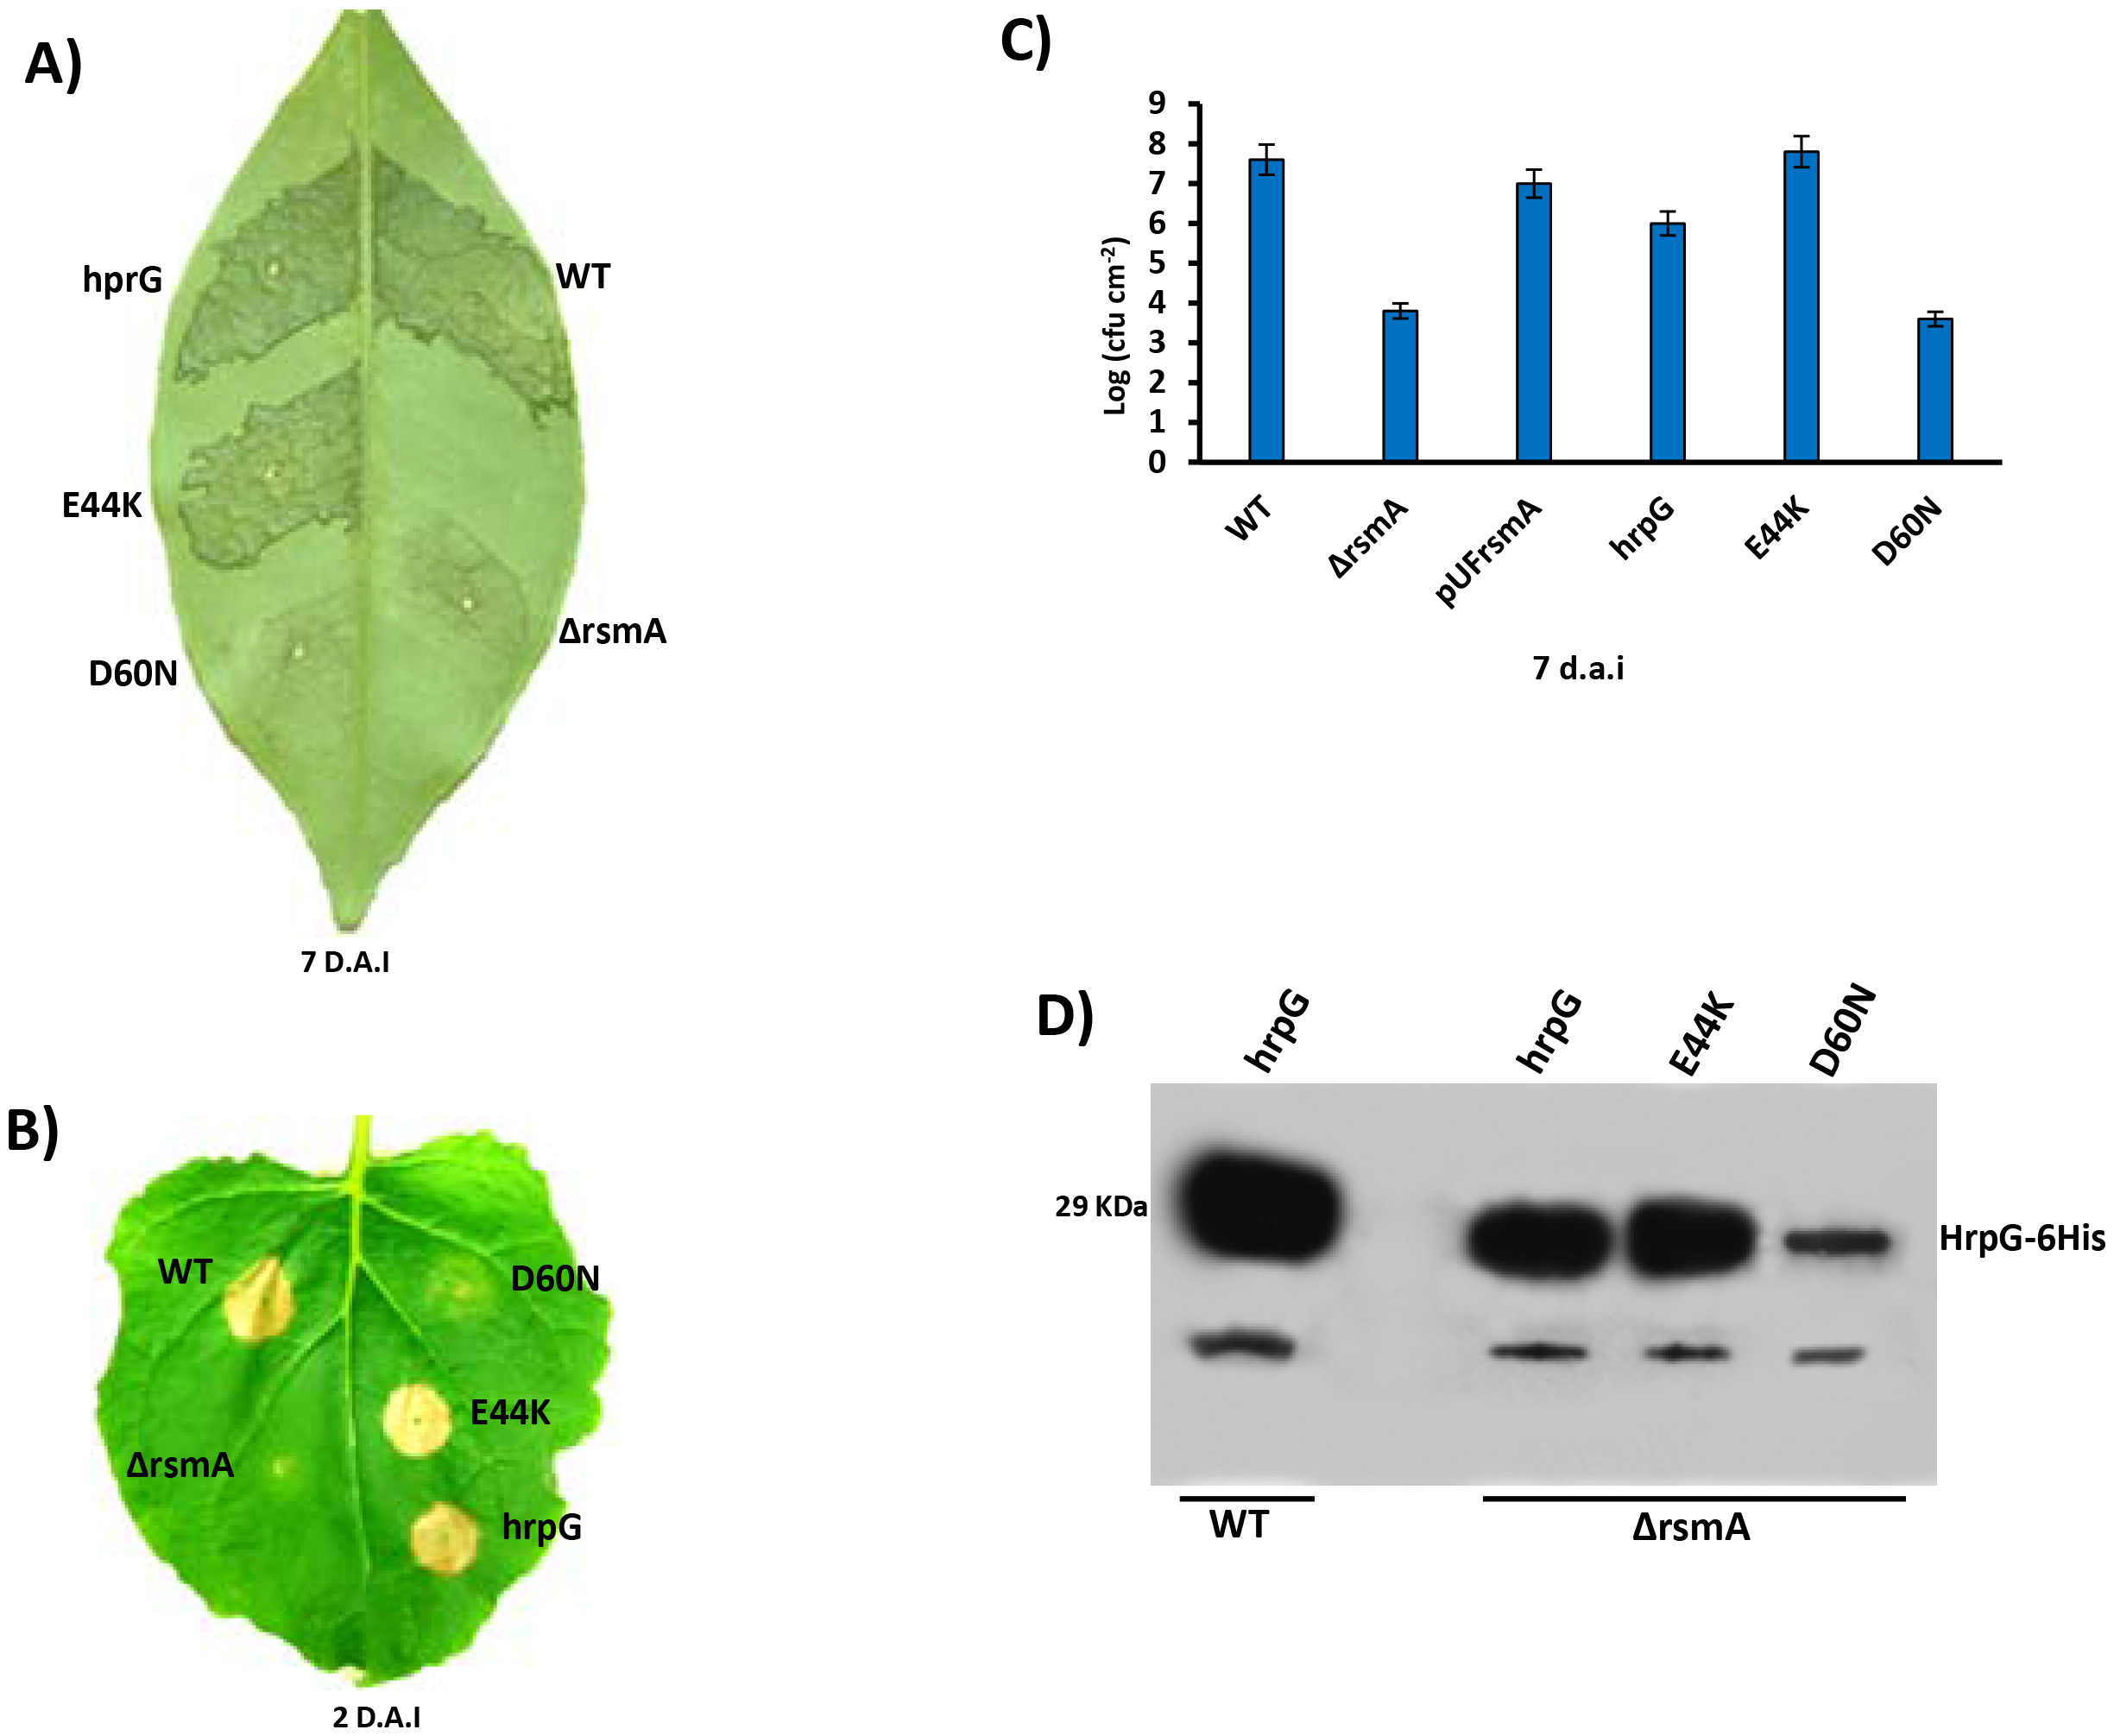 Ectopic expression of <i>hrpG</i> under control of a constitutive promoter restores full pathogenicity and HR of the <i>rsmA</i> mutant of <i>Xanthomonas citri</i> subsp. citri.